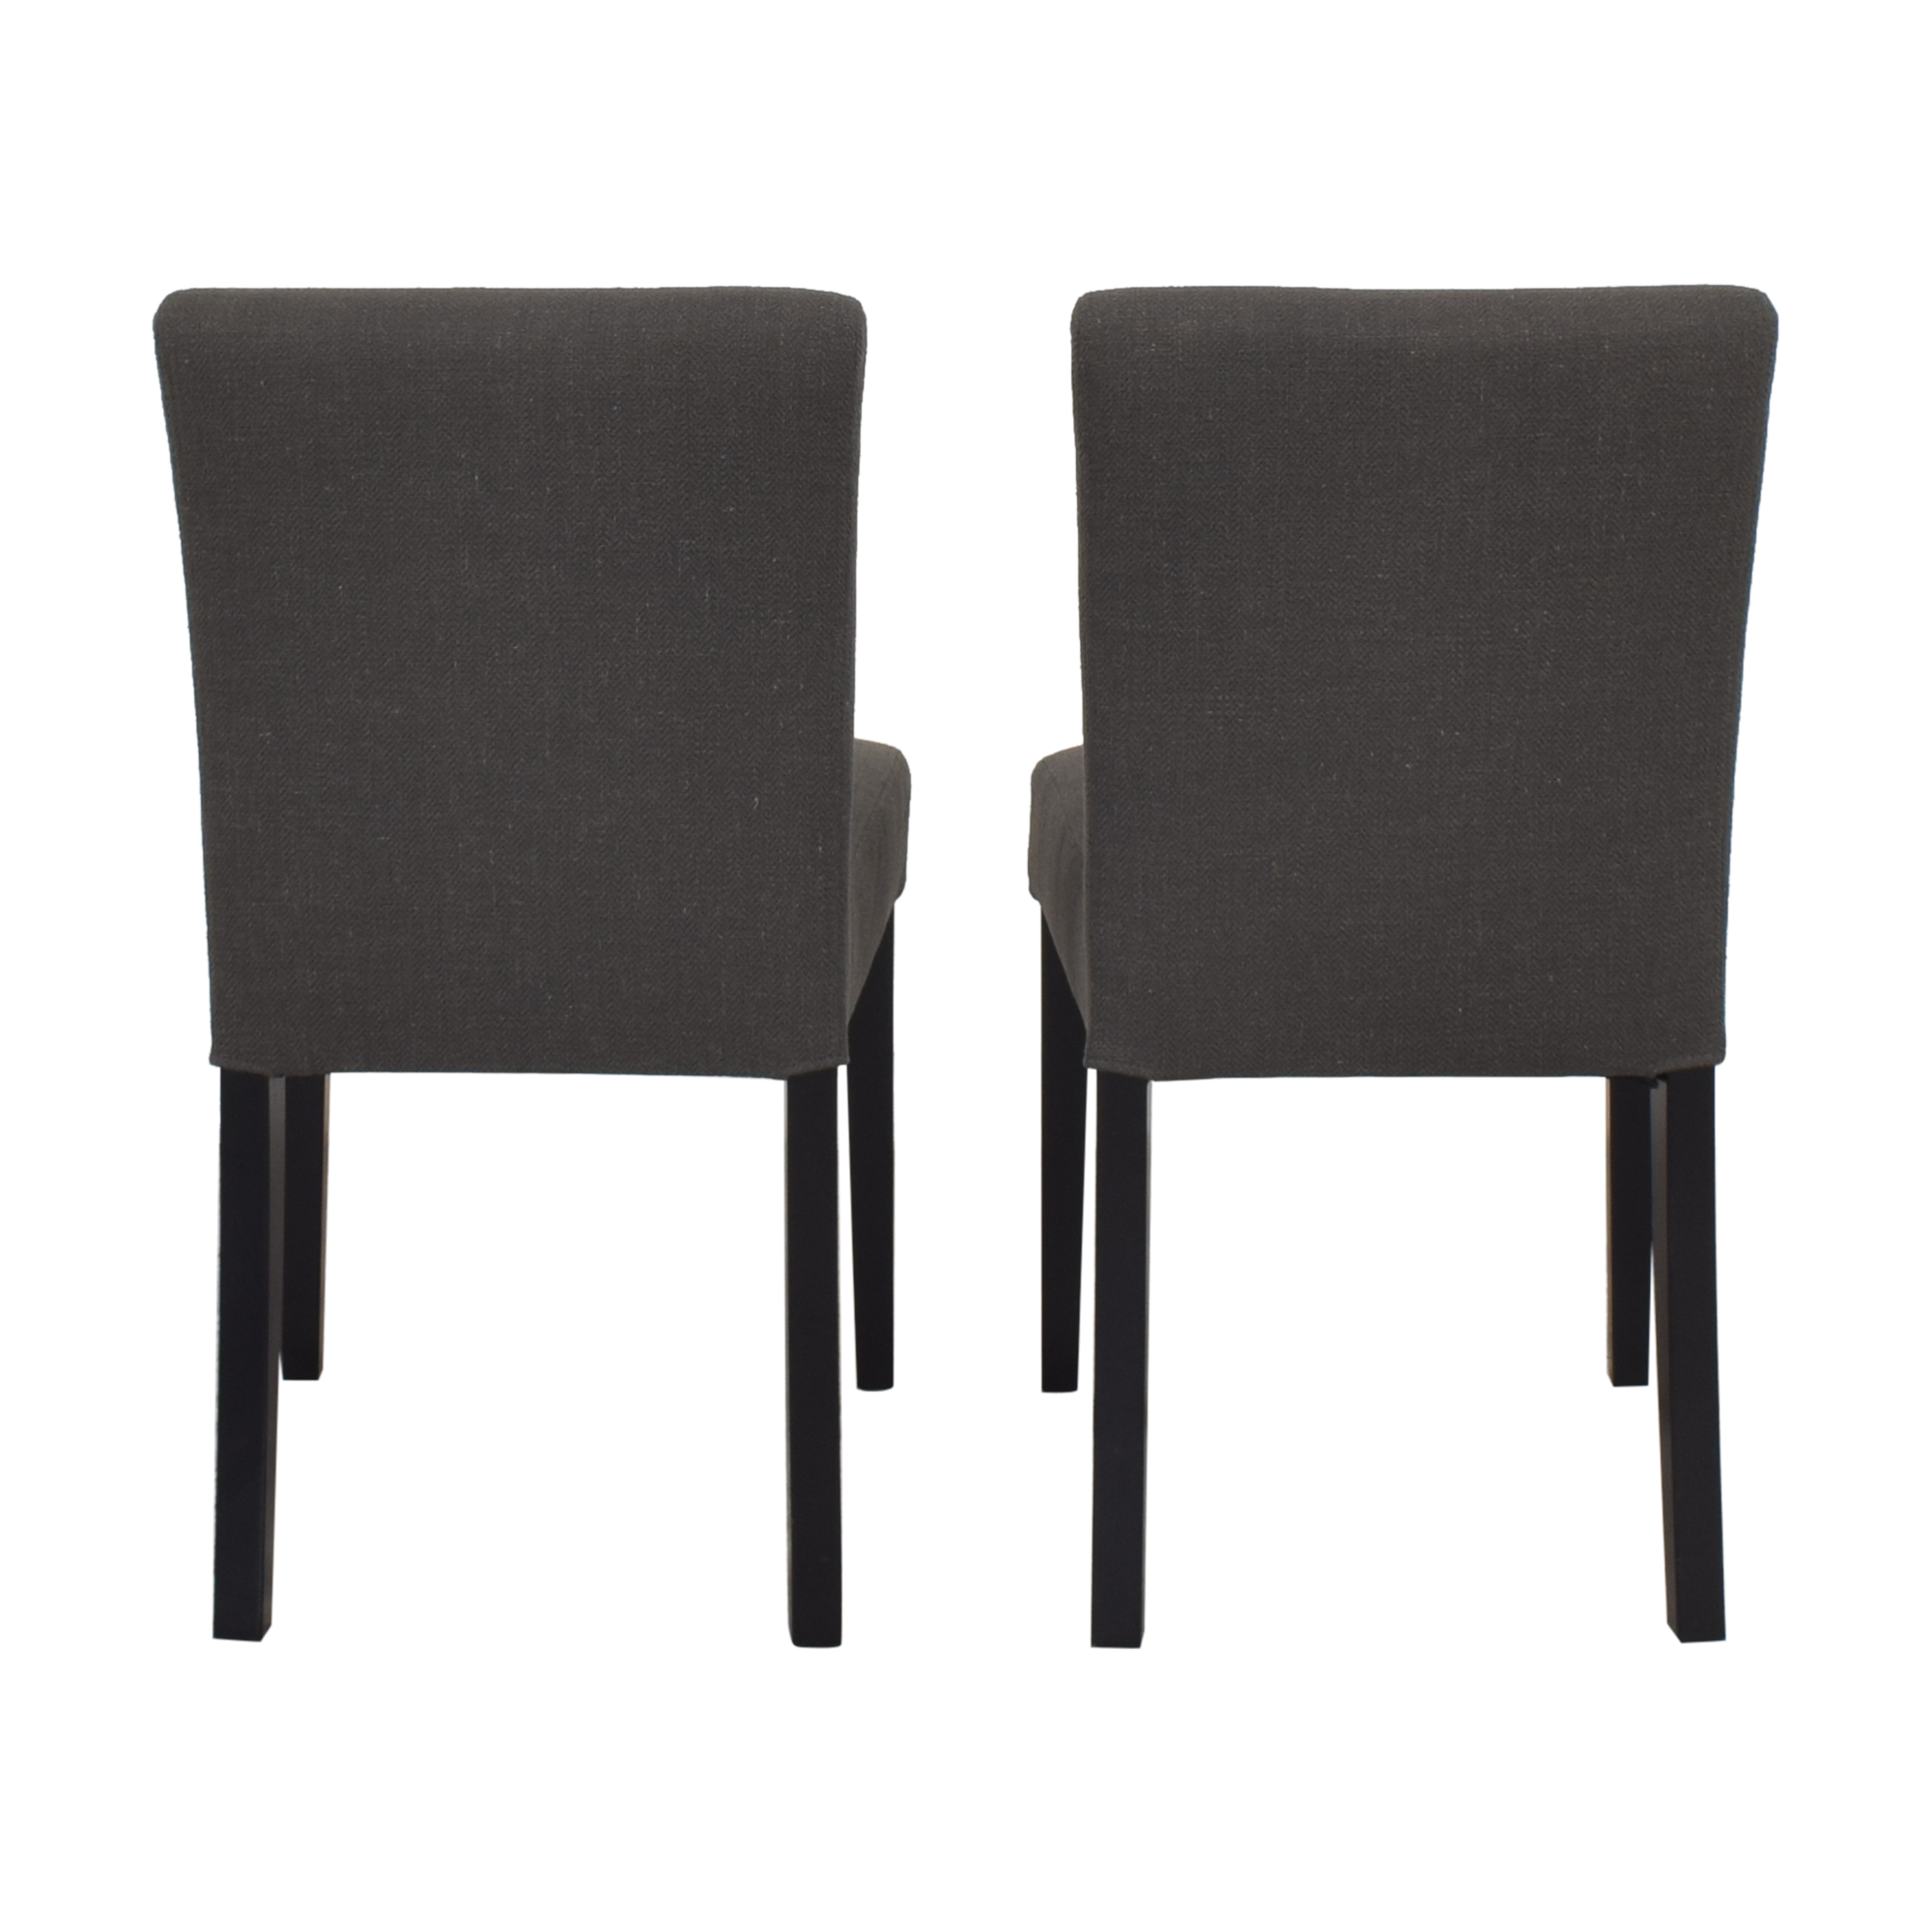 Crate & Barrel Crate & Barrel Lowe Dining Chairs ct